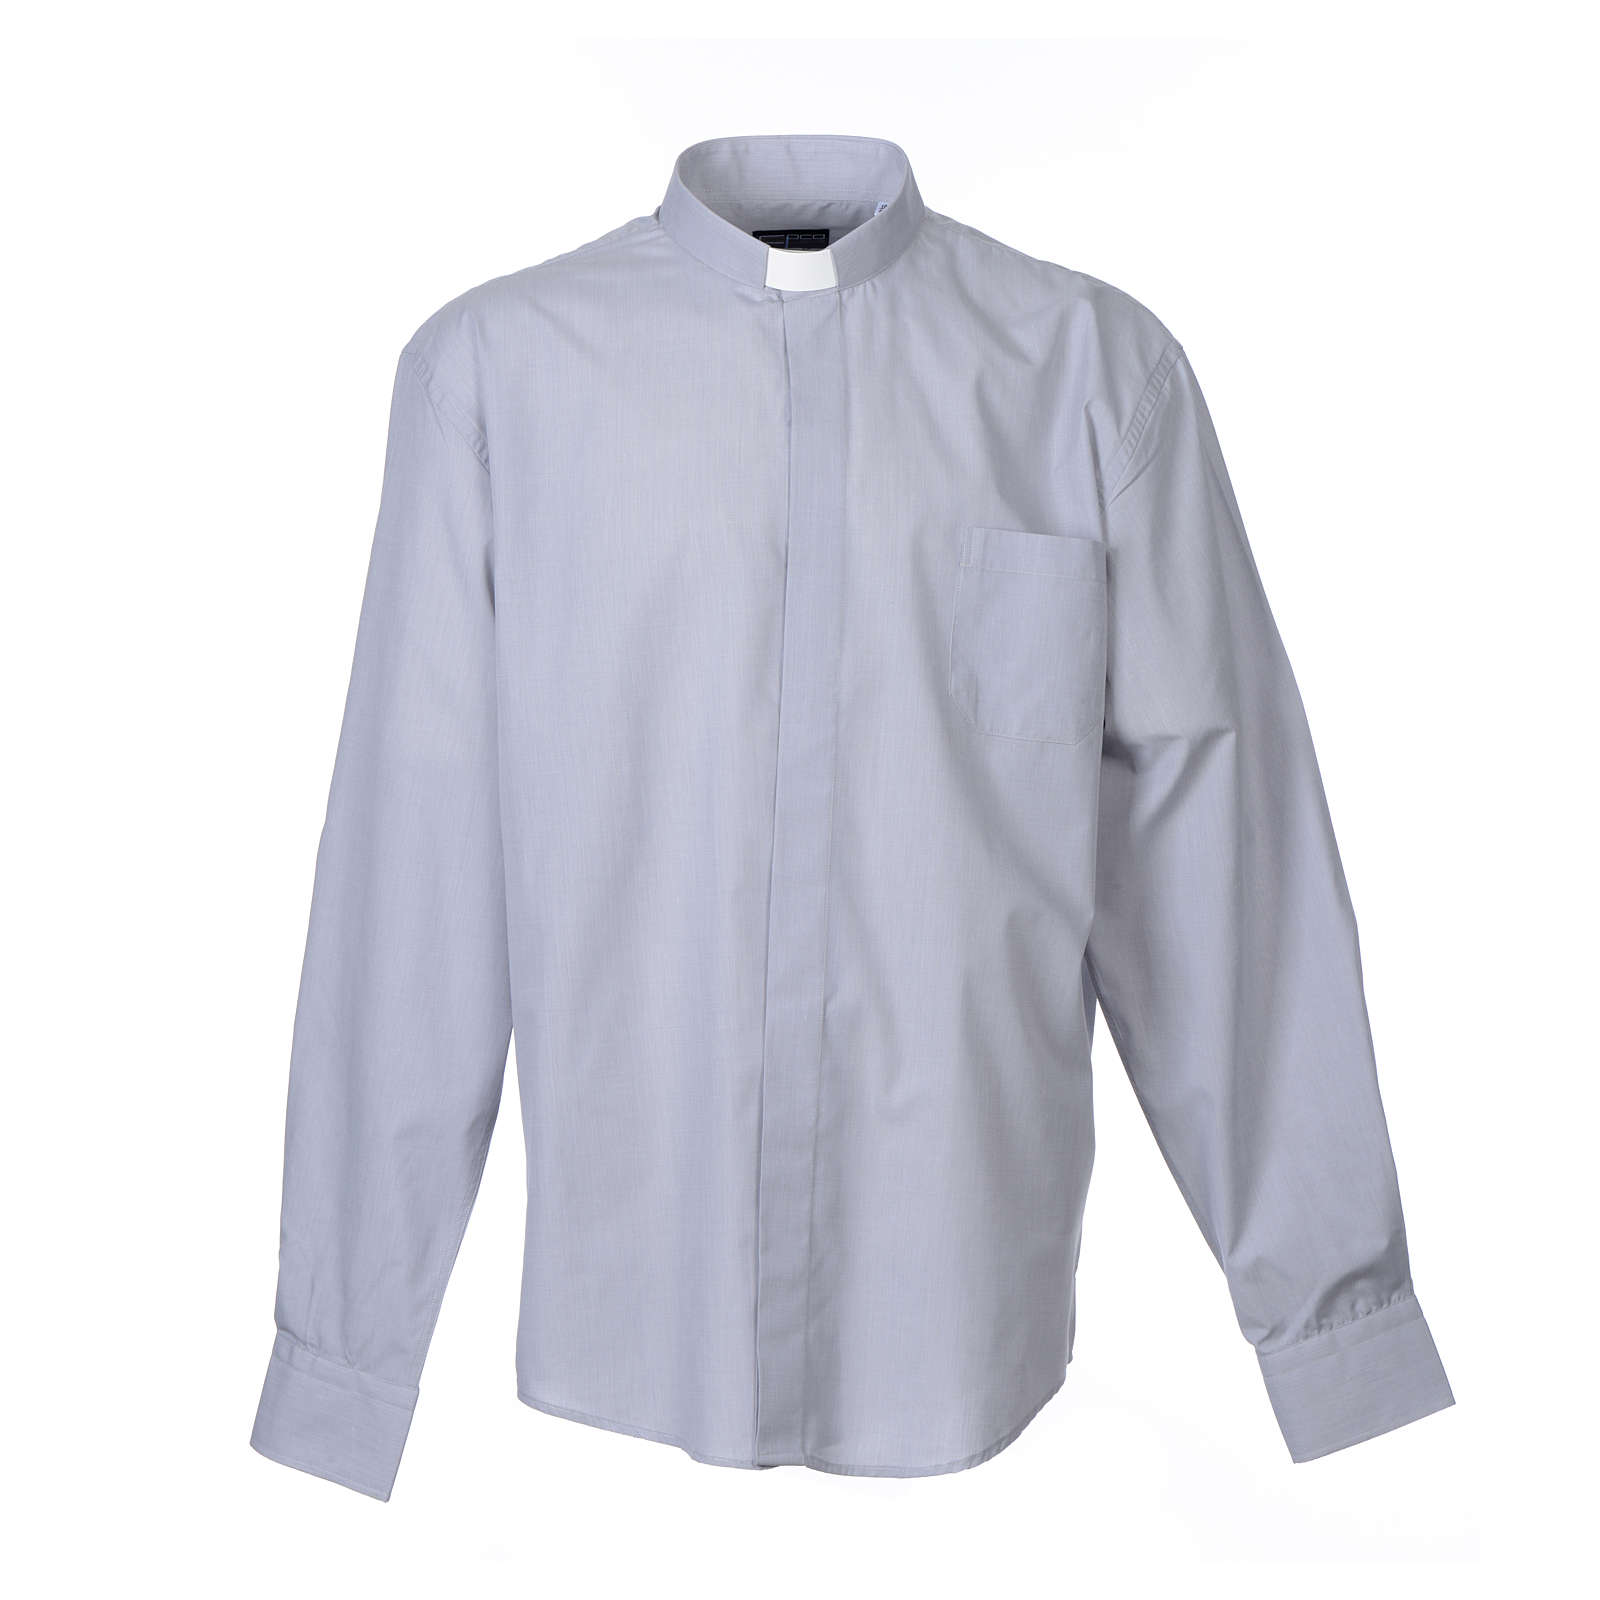 Clerical Chambray Shirt light grey long sleeve, mixed cotton 4